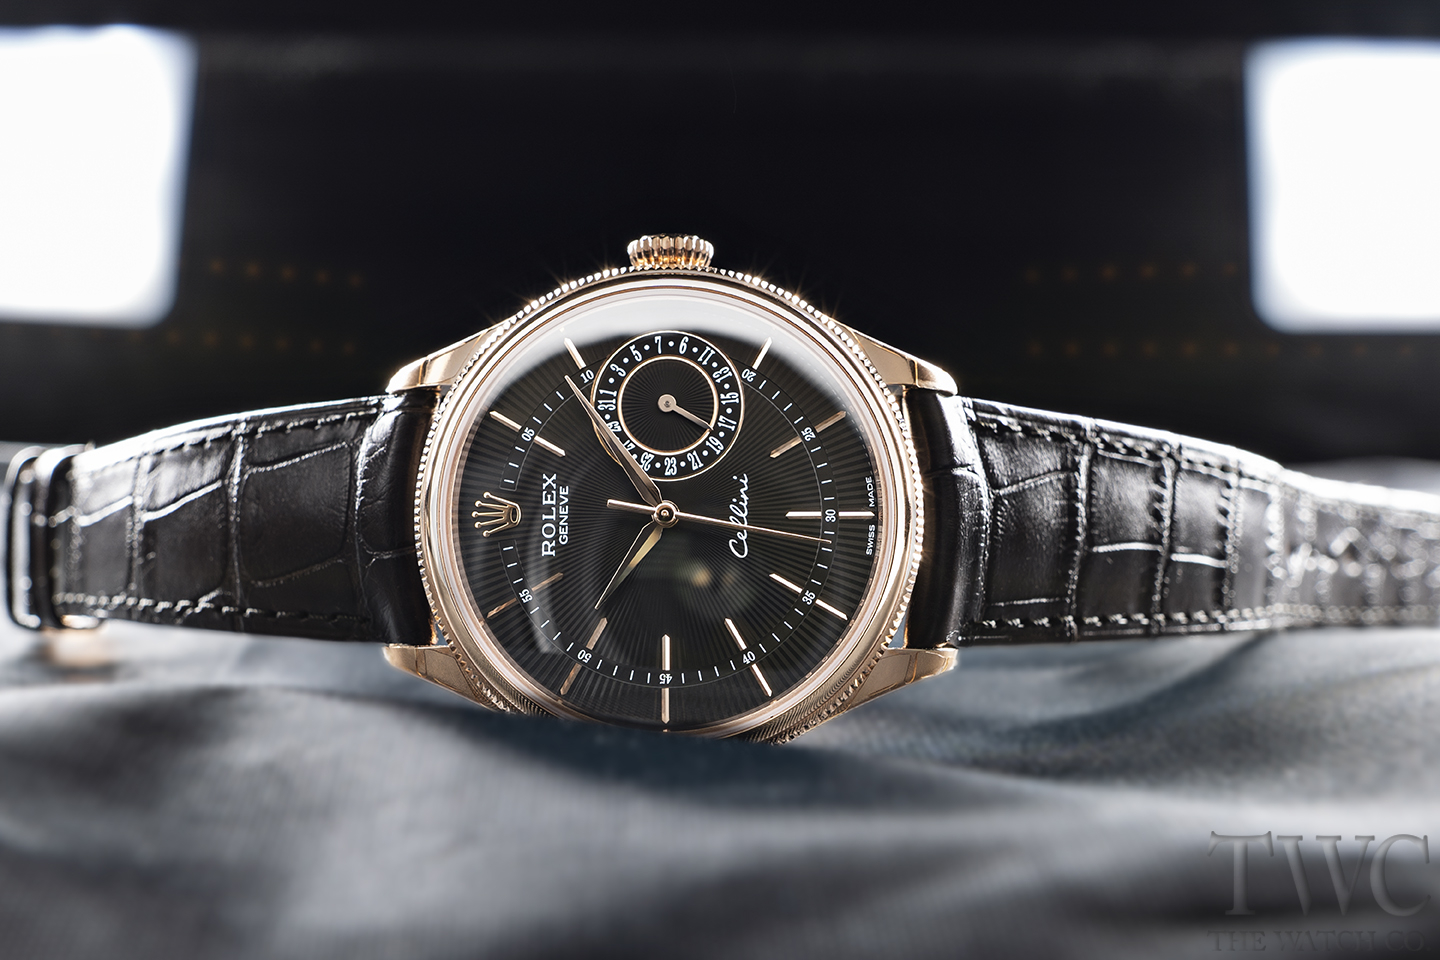 6 Awesome Dress Watches For Men That Would Look Great On You